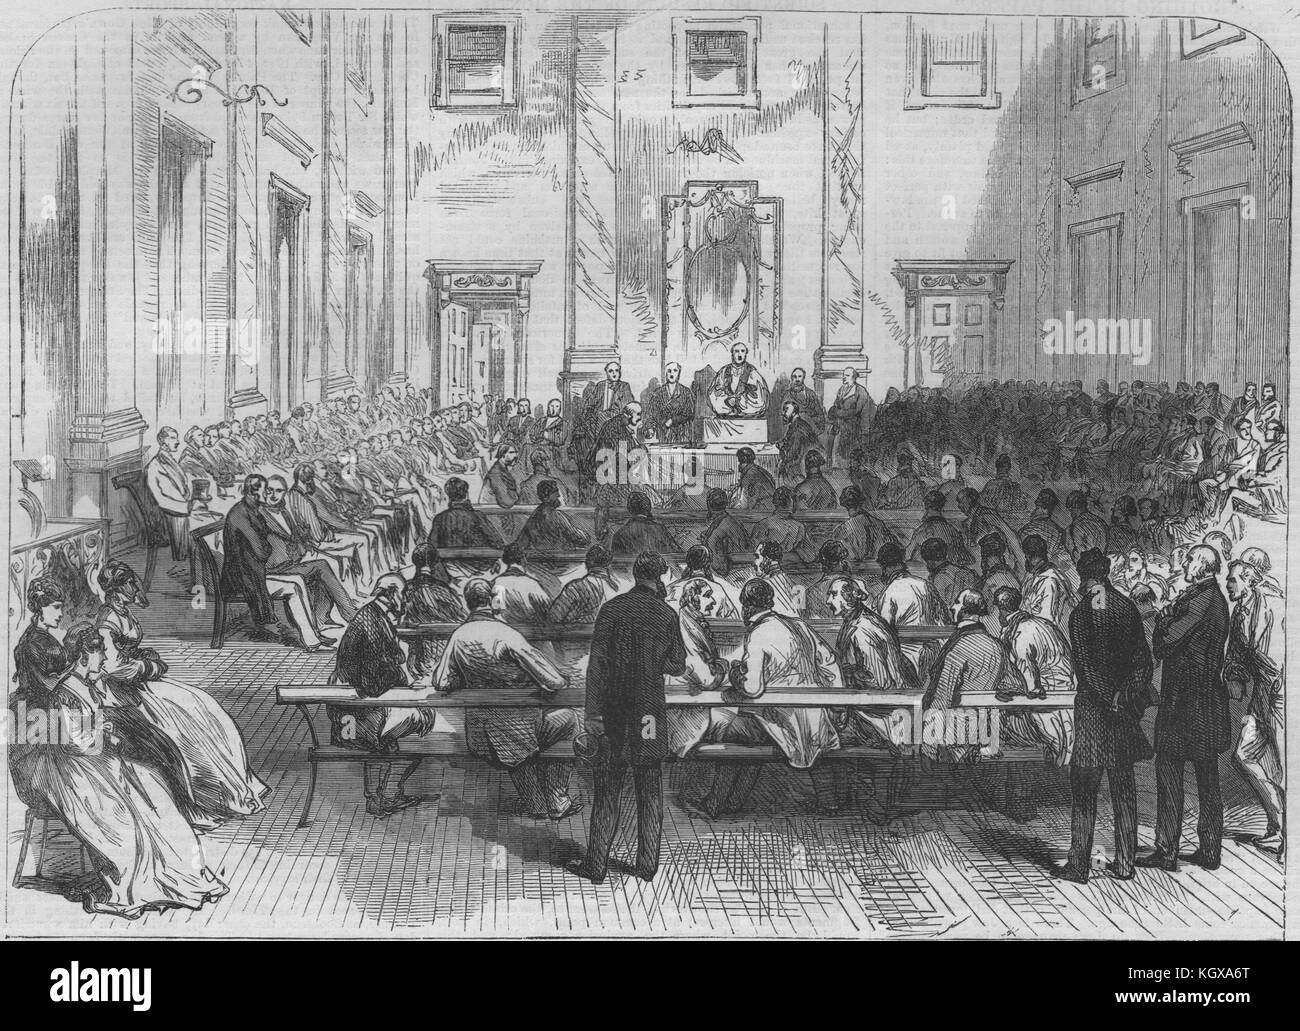 Lay church members mtg in the Assembly Rooms, Lincoln. Bishop in the chair 1869. The Illustrated London News - Stock Image